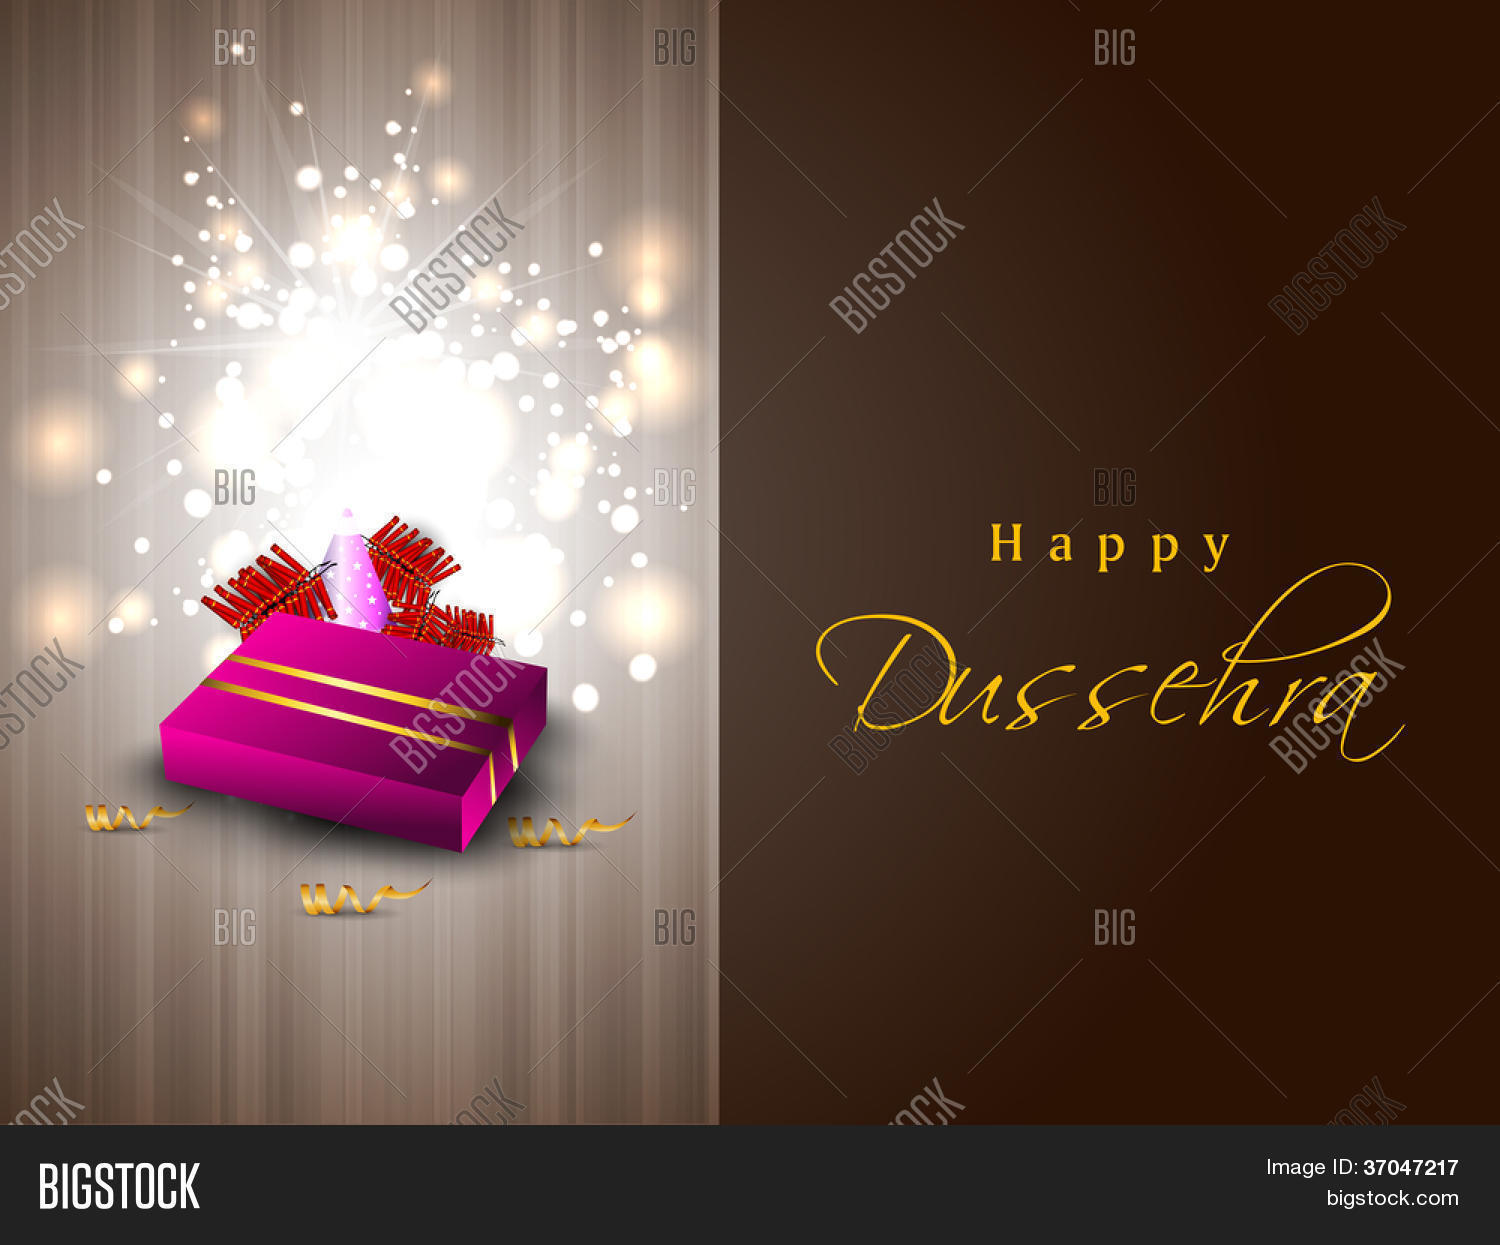 Greeting card vector photo free trial bigstock greeting card for dussehra festival celebration in india eps 10 m4hsunfo